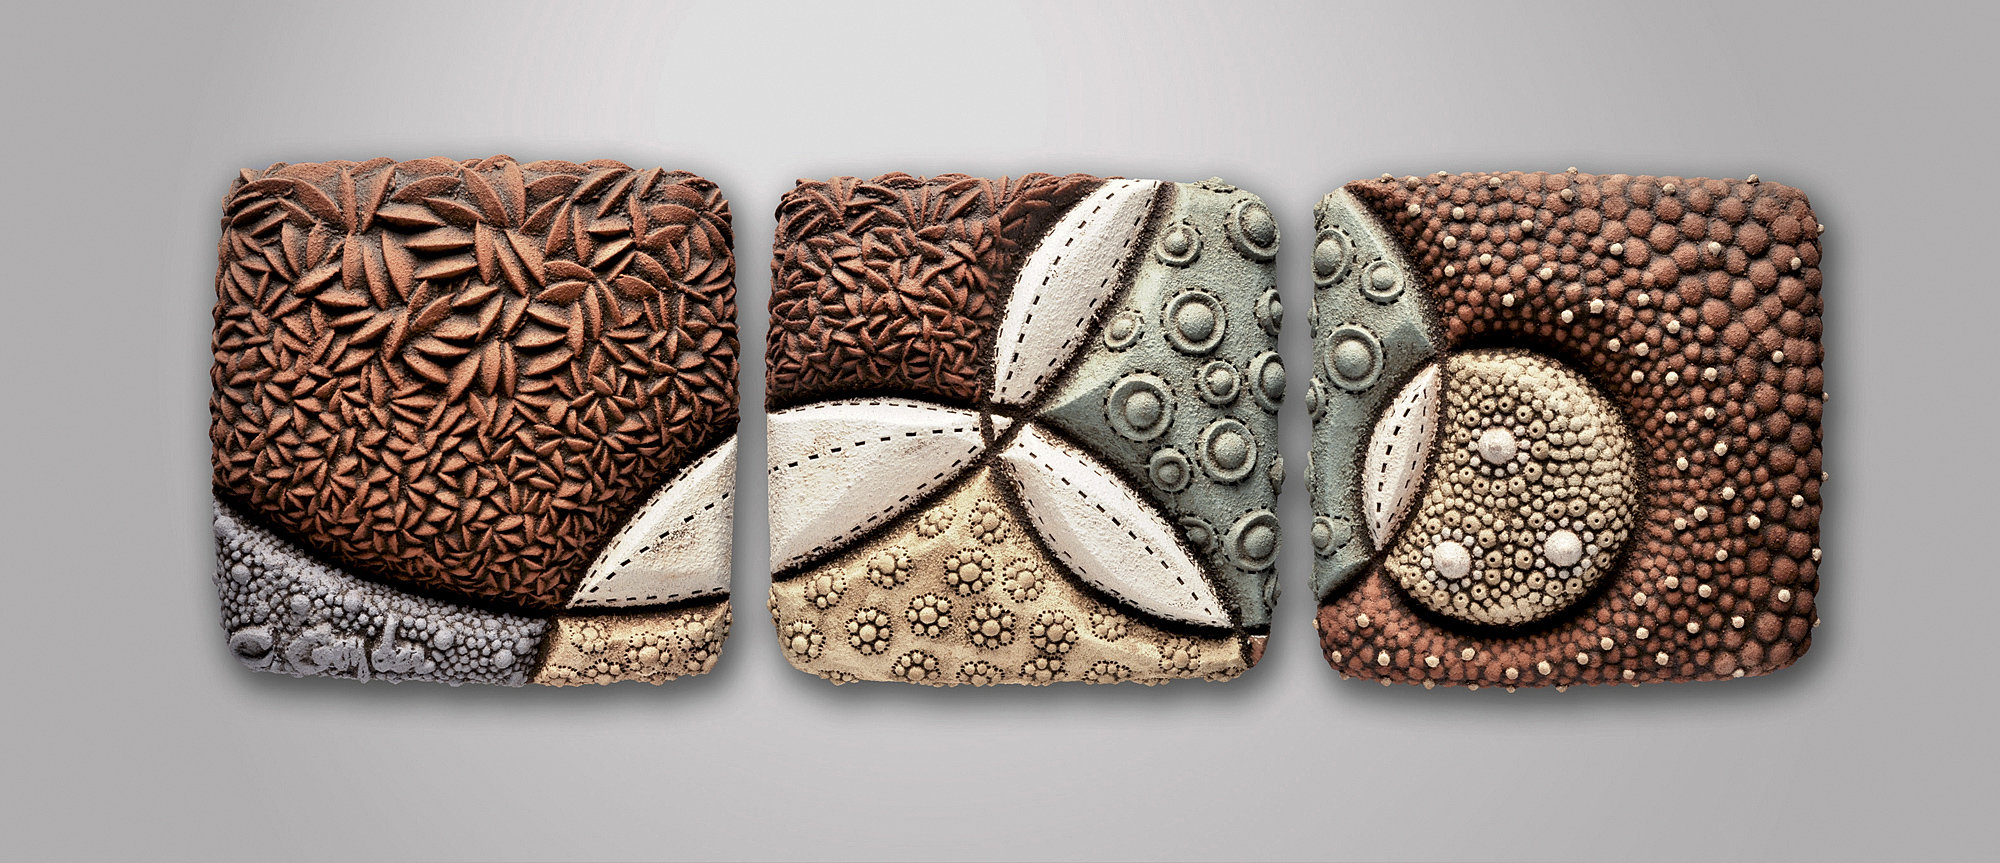 Perigee By Christopher Gryder Ceramic Wall Sculpture